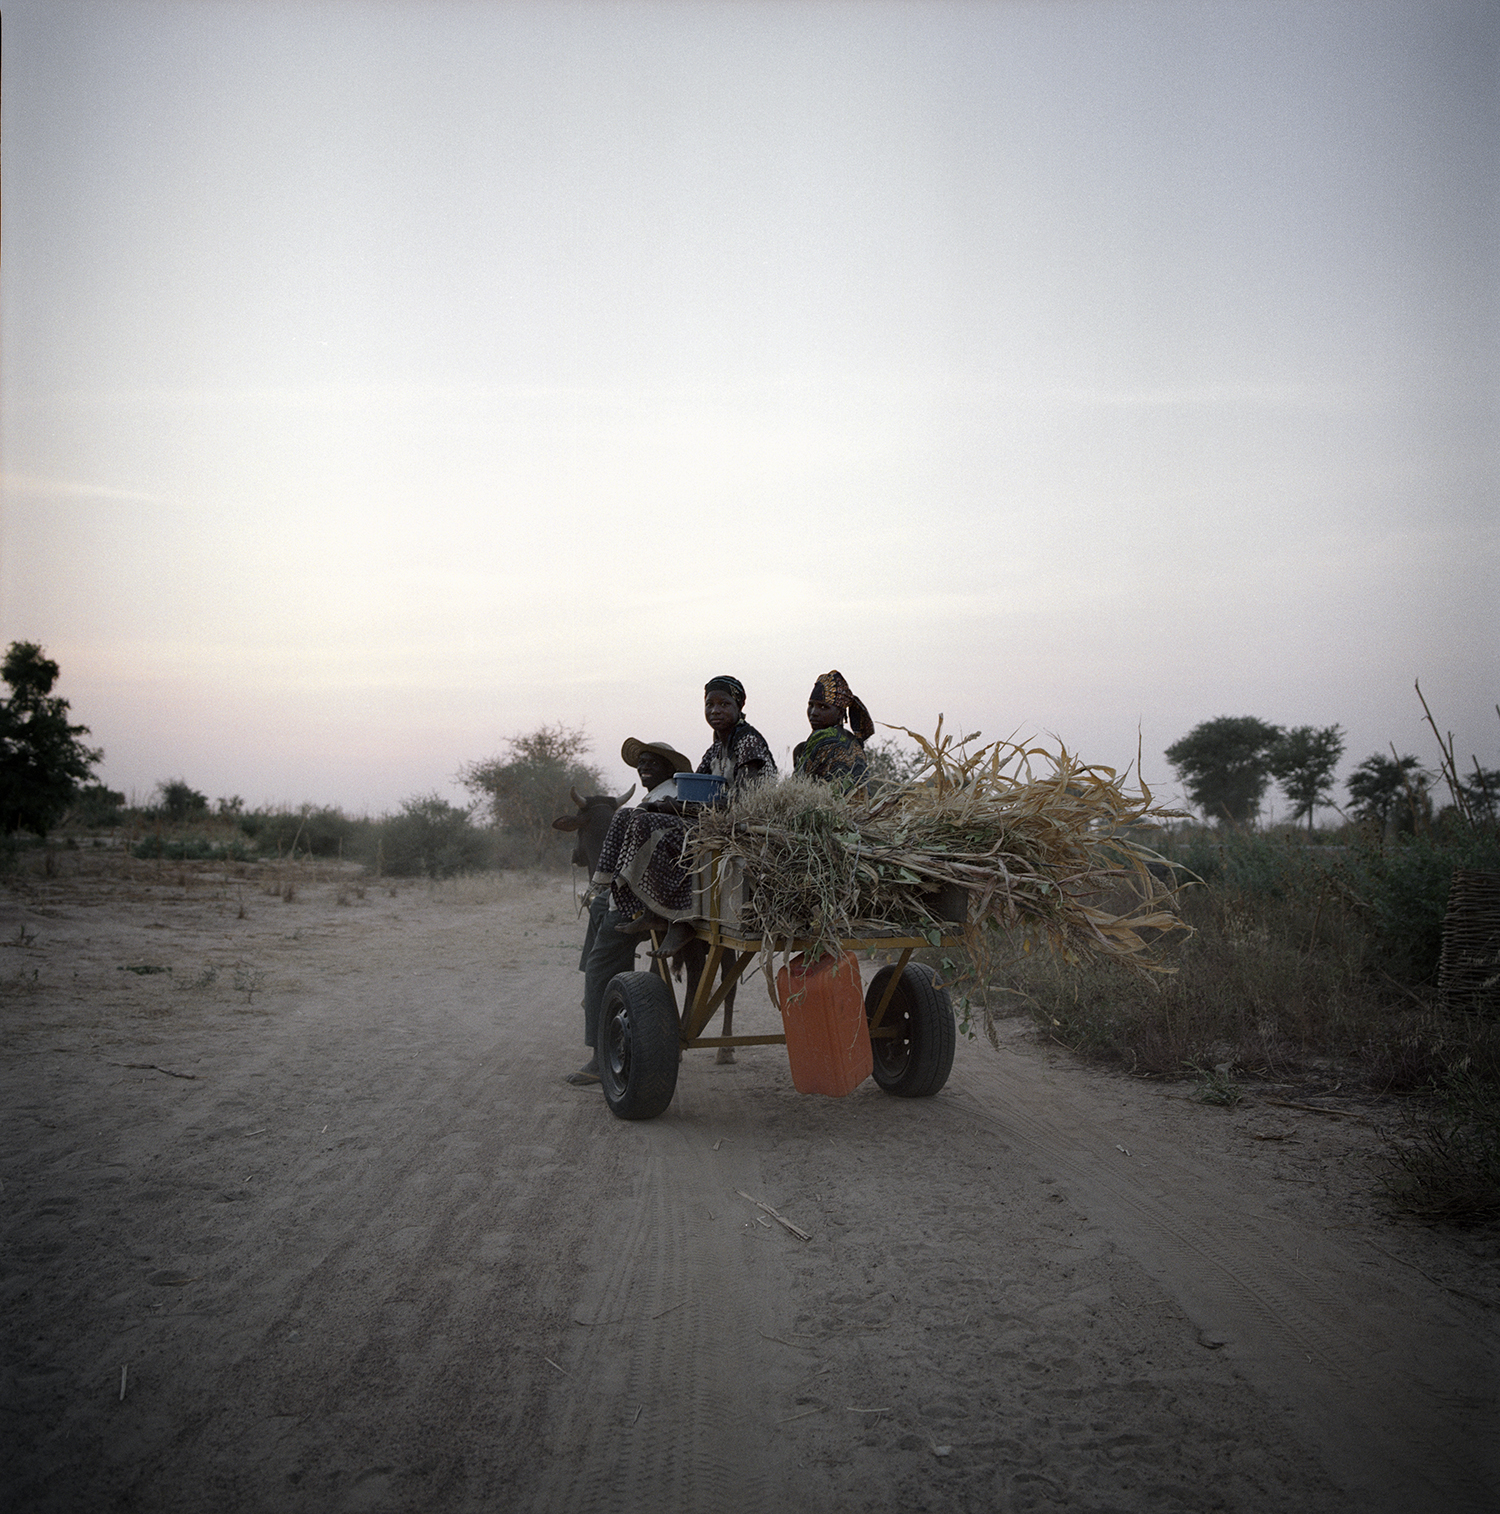 Child_Marriage_Niger_026.jpg